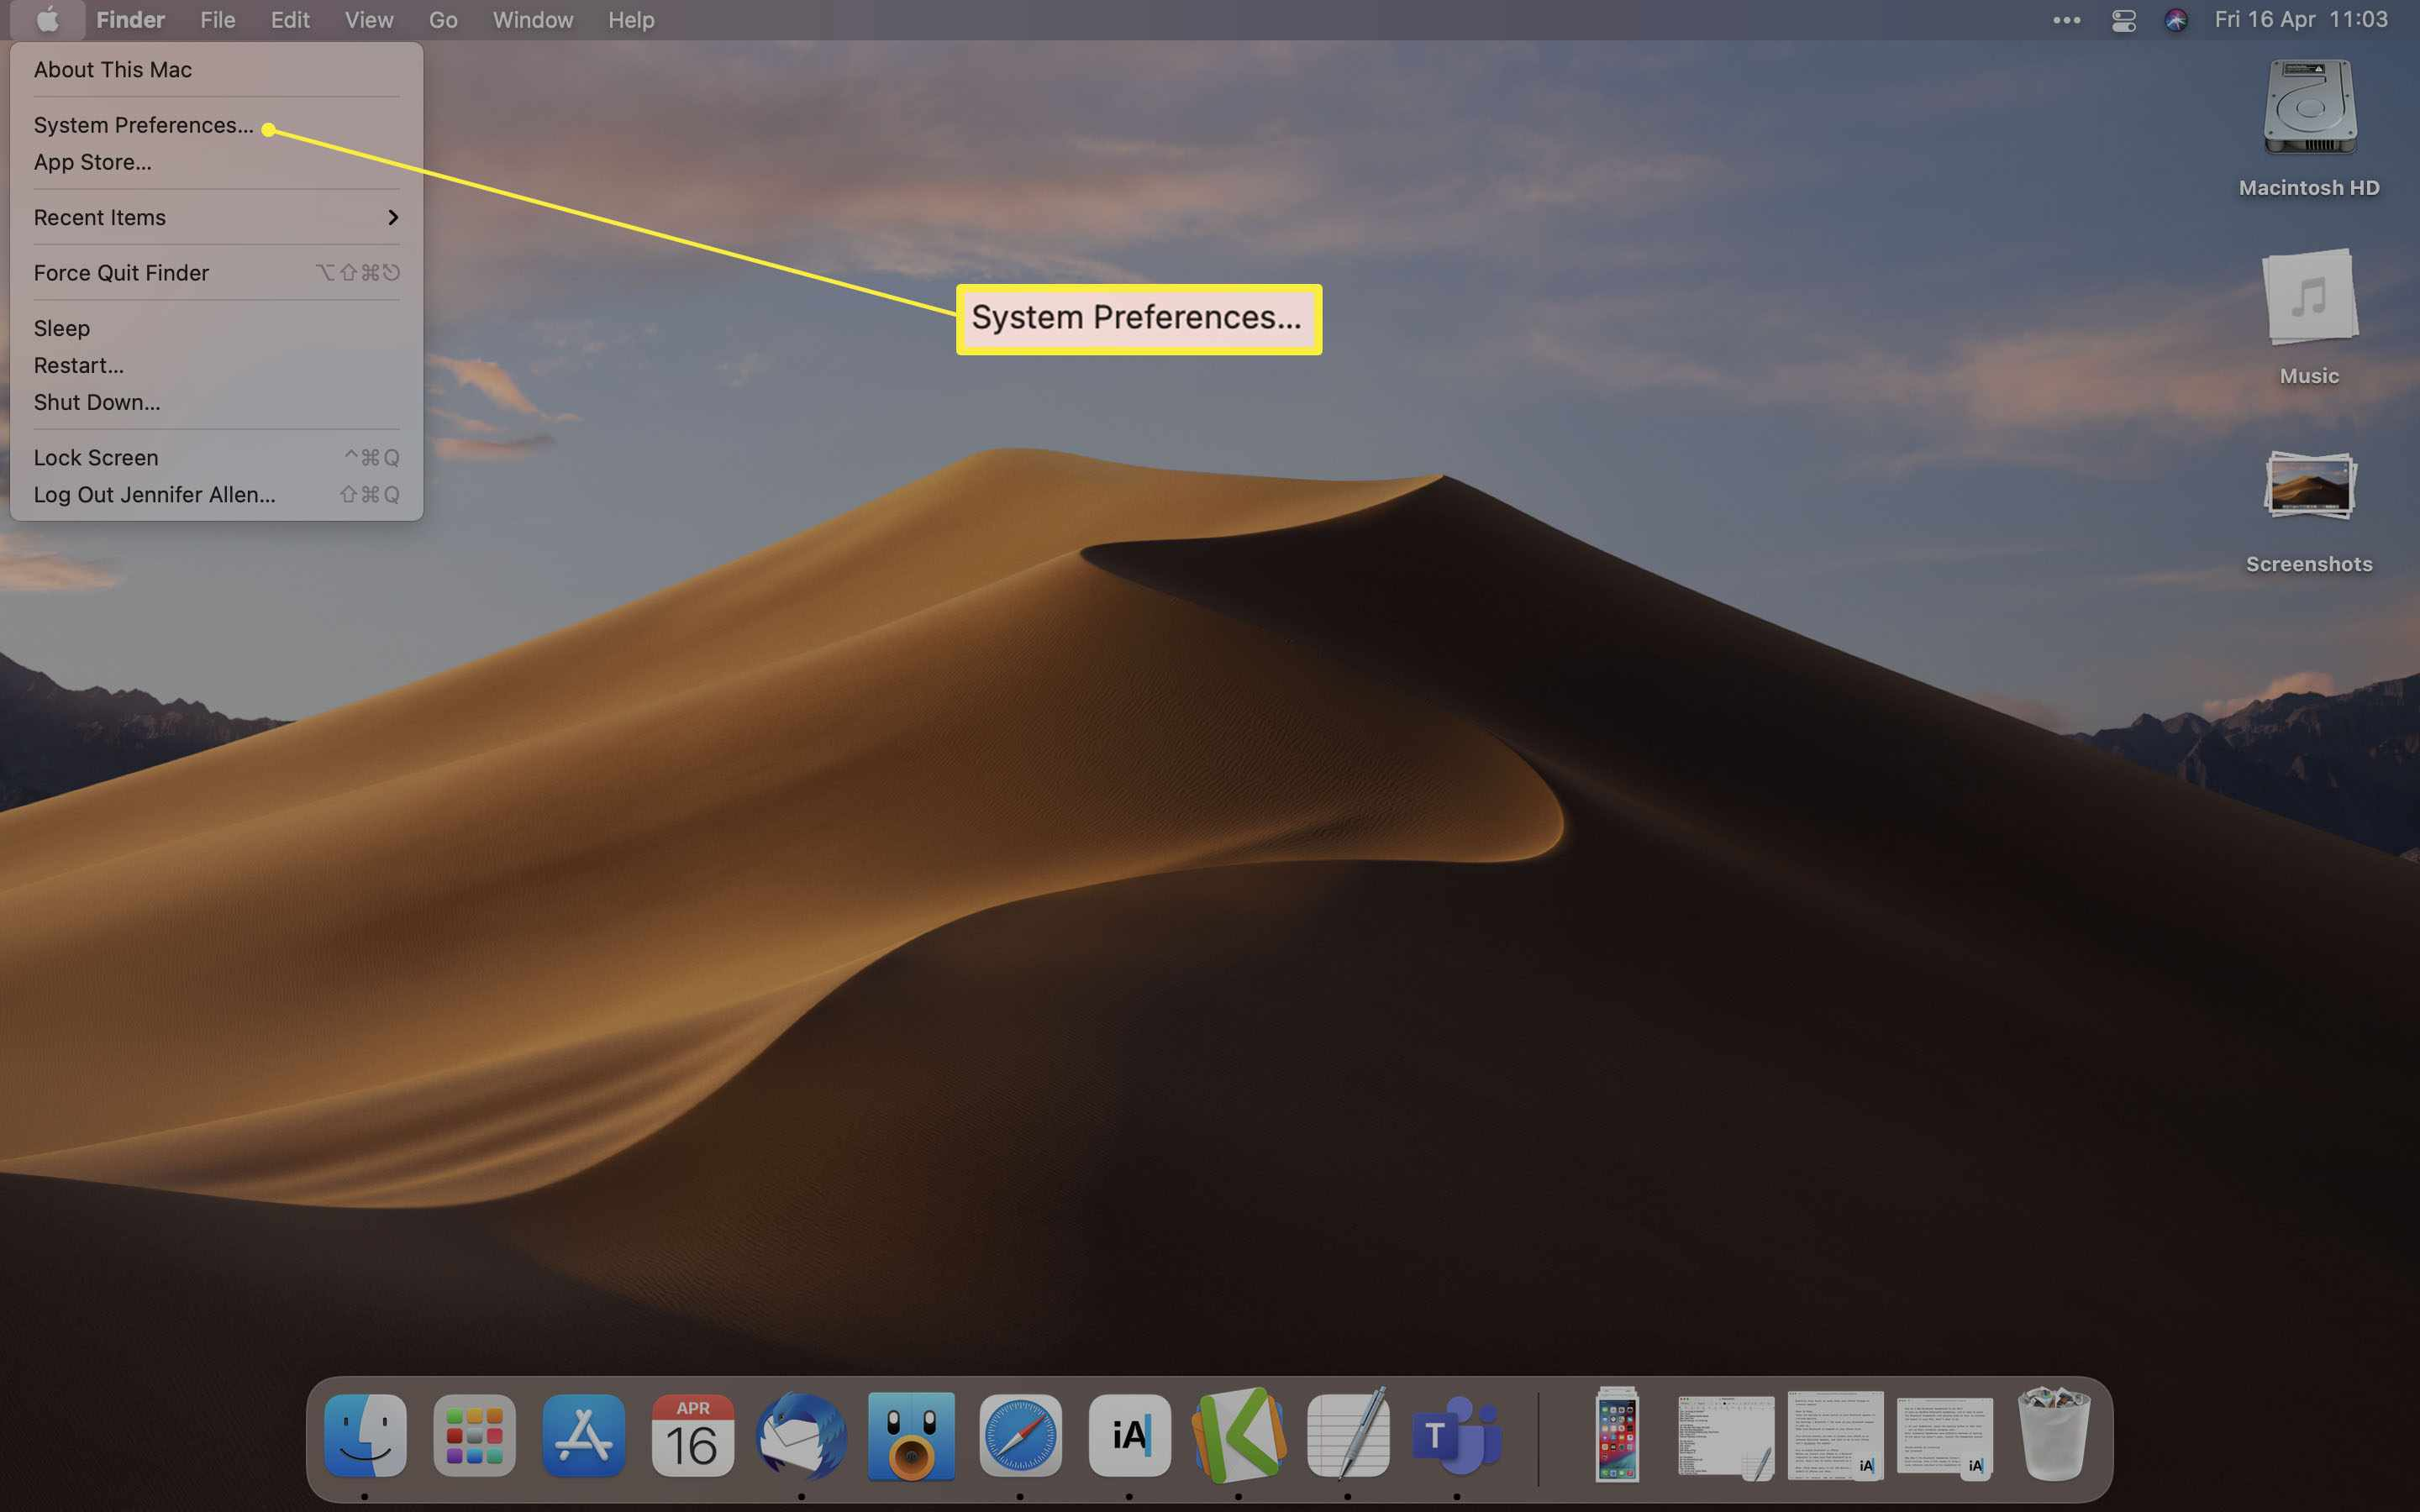 MacOS with System Preferences highlighted